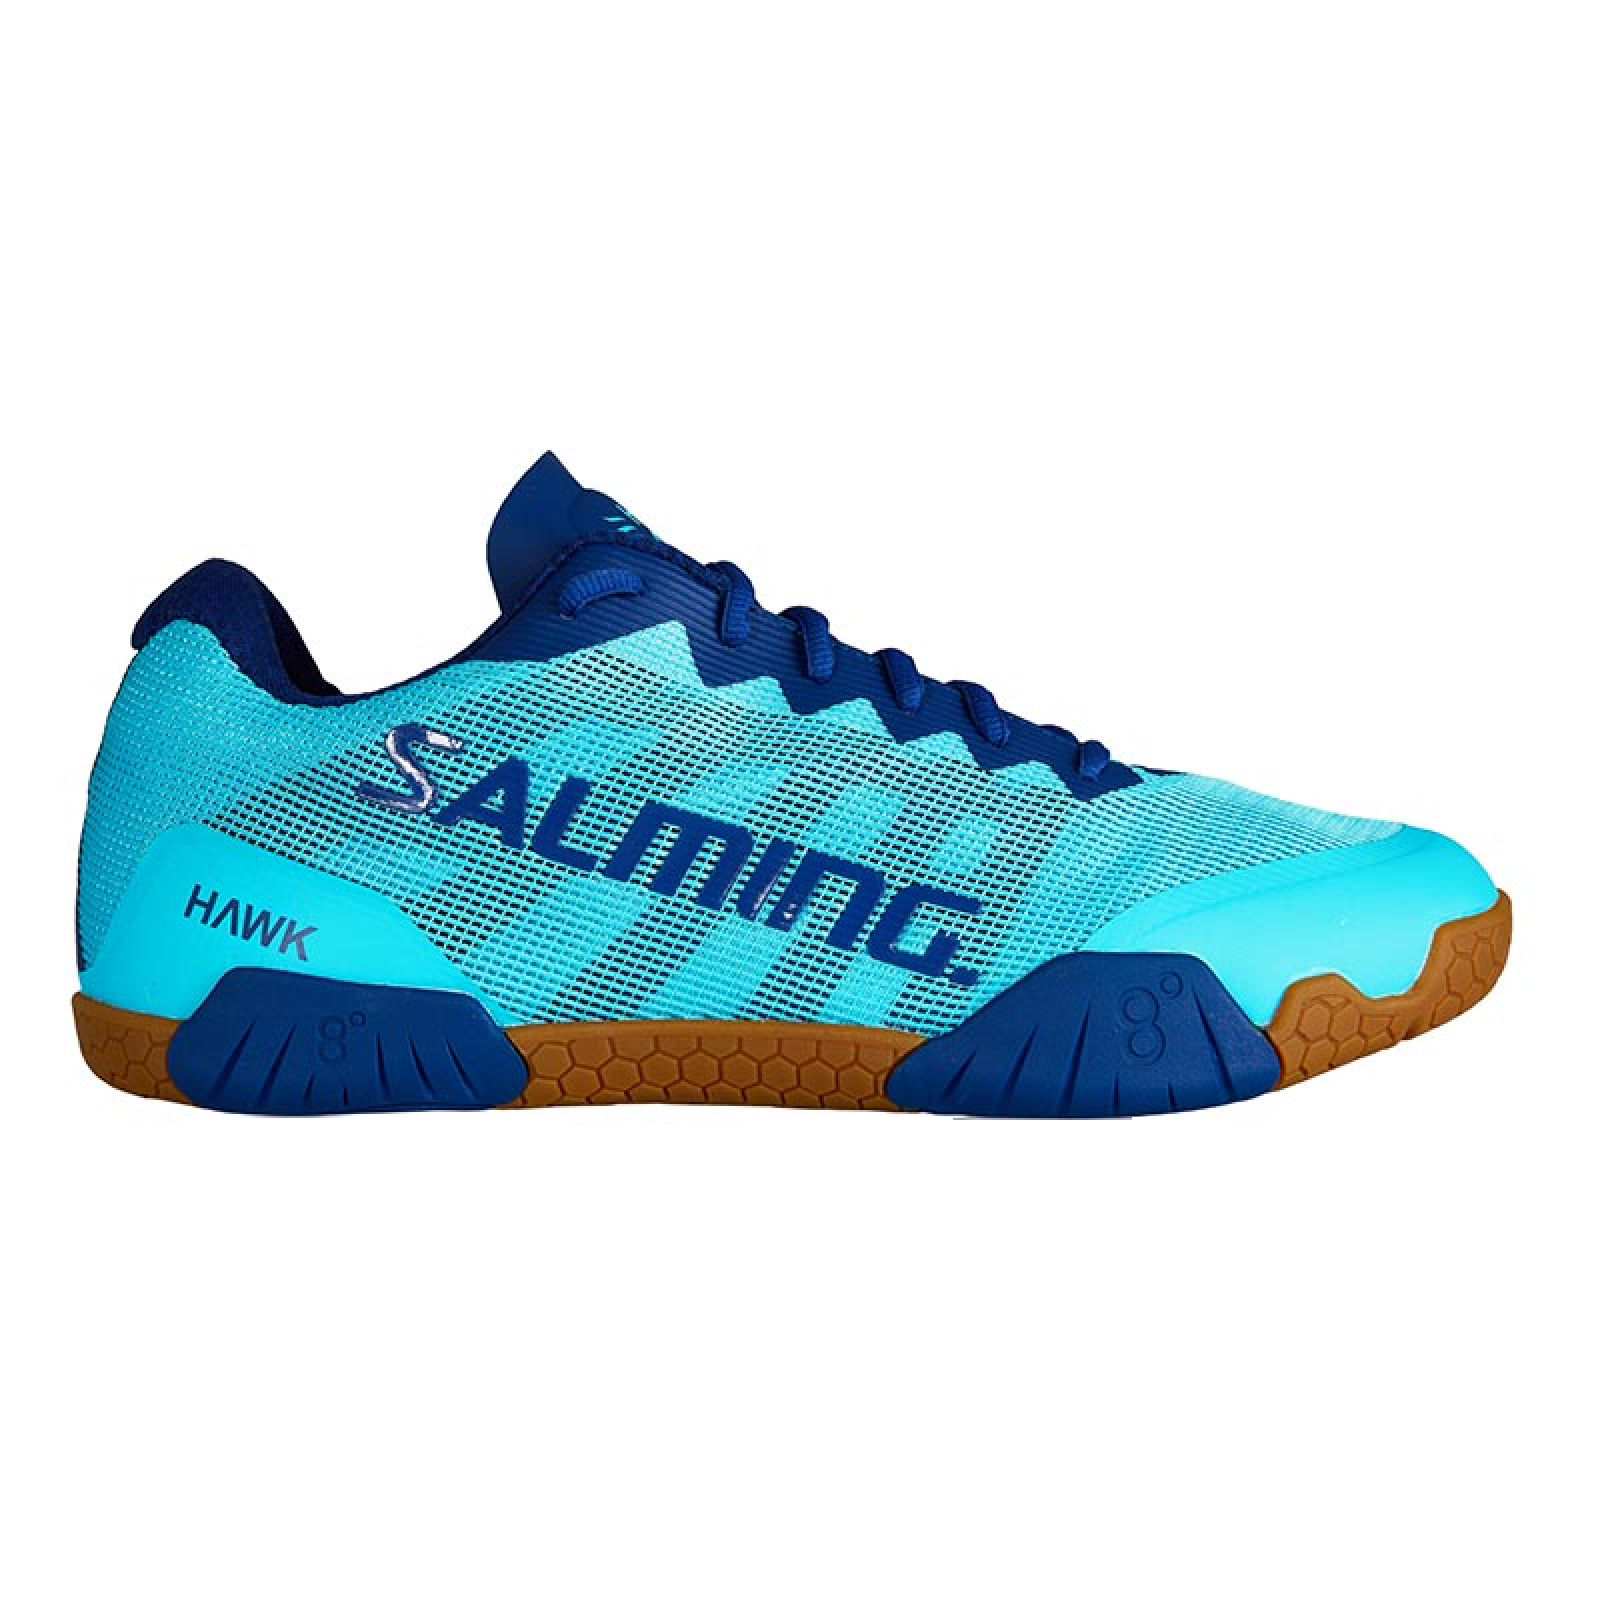 SALMING HAWK 2019 36-42.5 Damens 36-42.5 2019 NEU indoor handball kobra viper adder race a89261